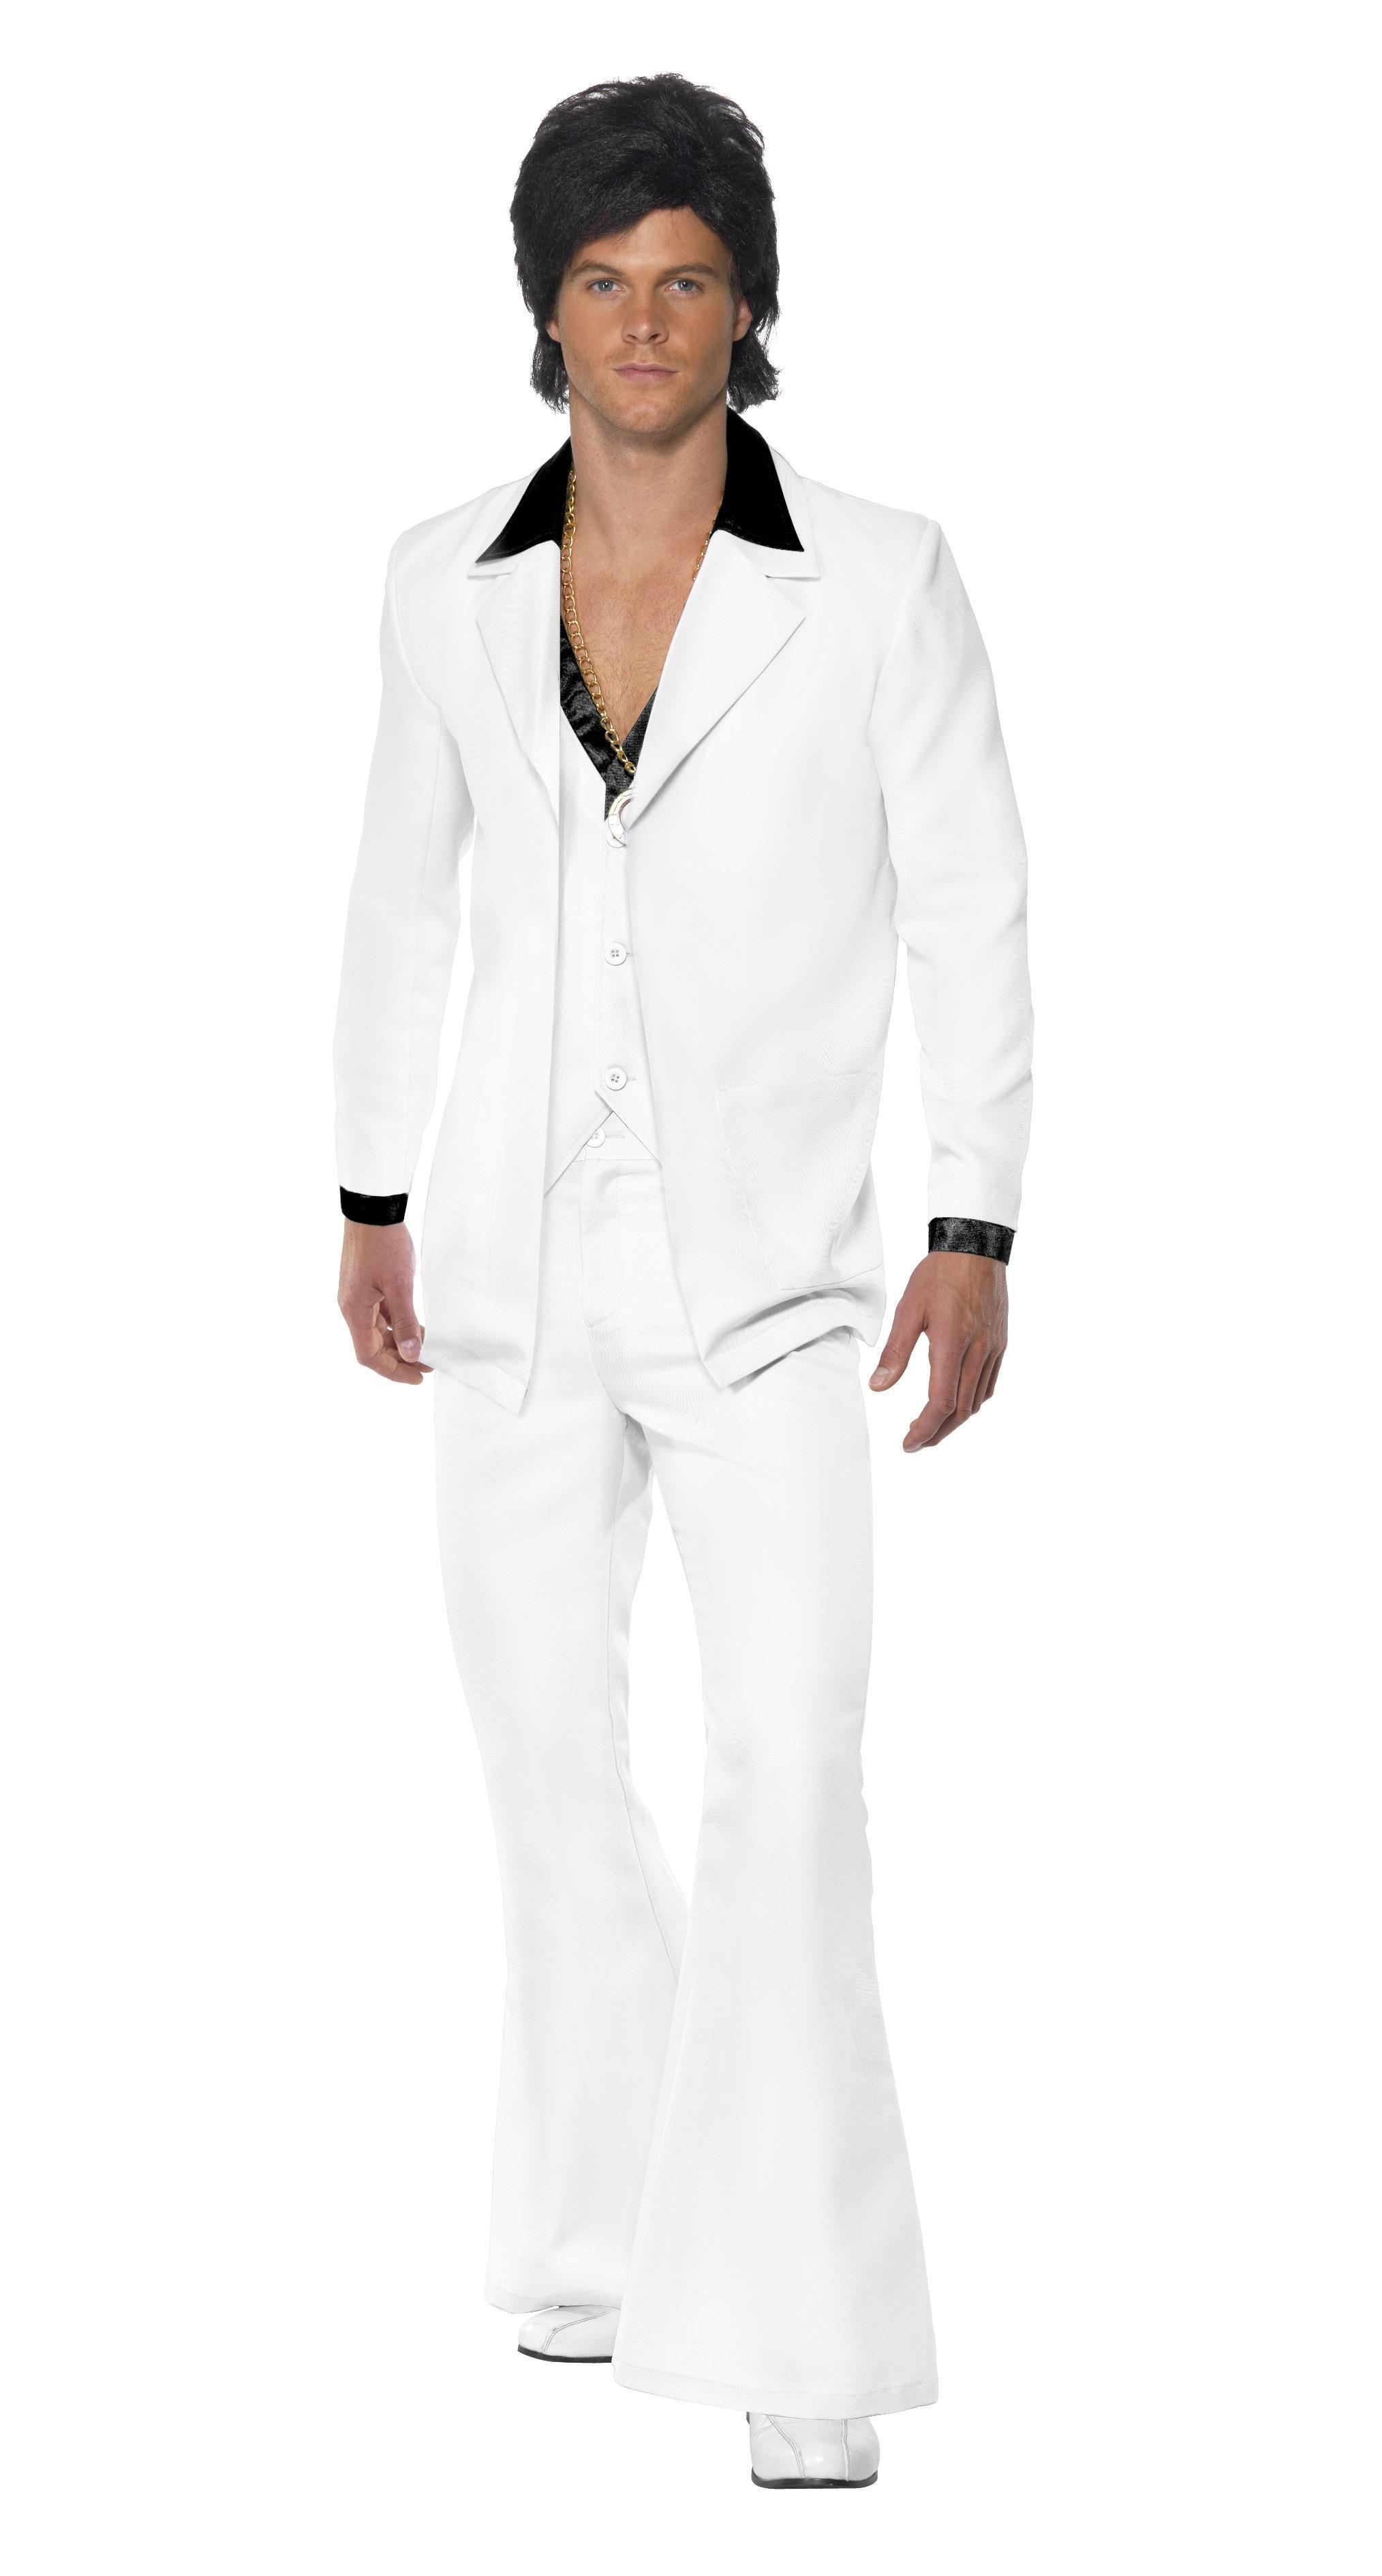 70s Disco Dancer Suit Costume White